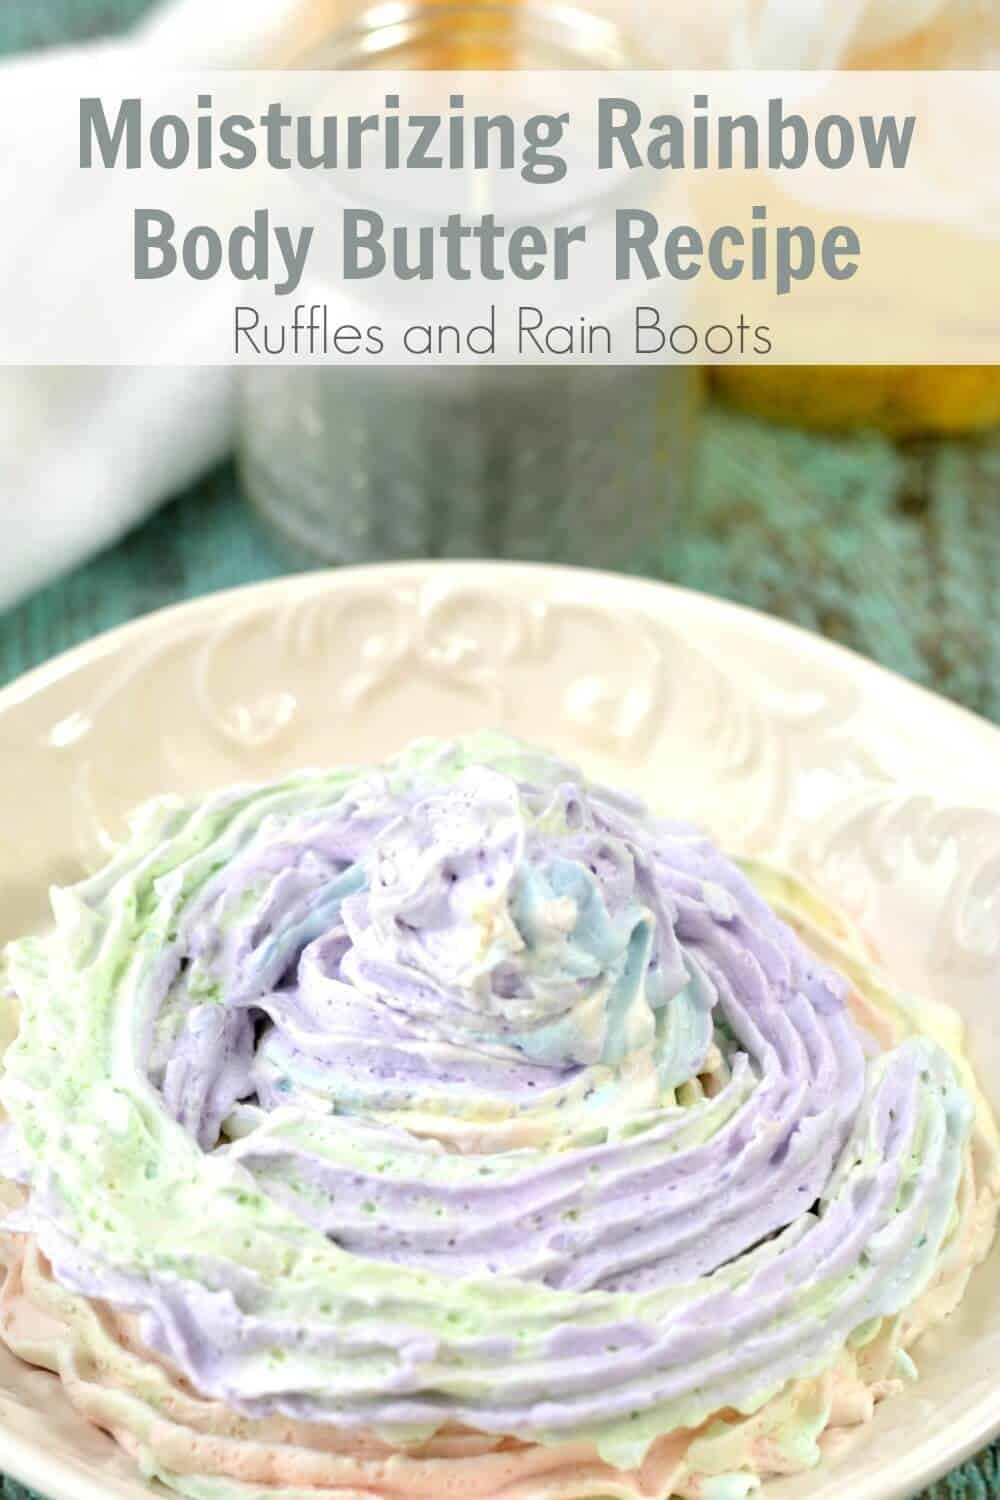 close up of rainbow body butter in bowl with text moisturizing rainbow body butter recipe